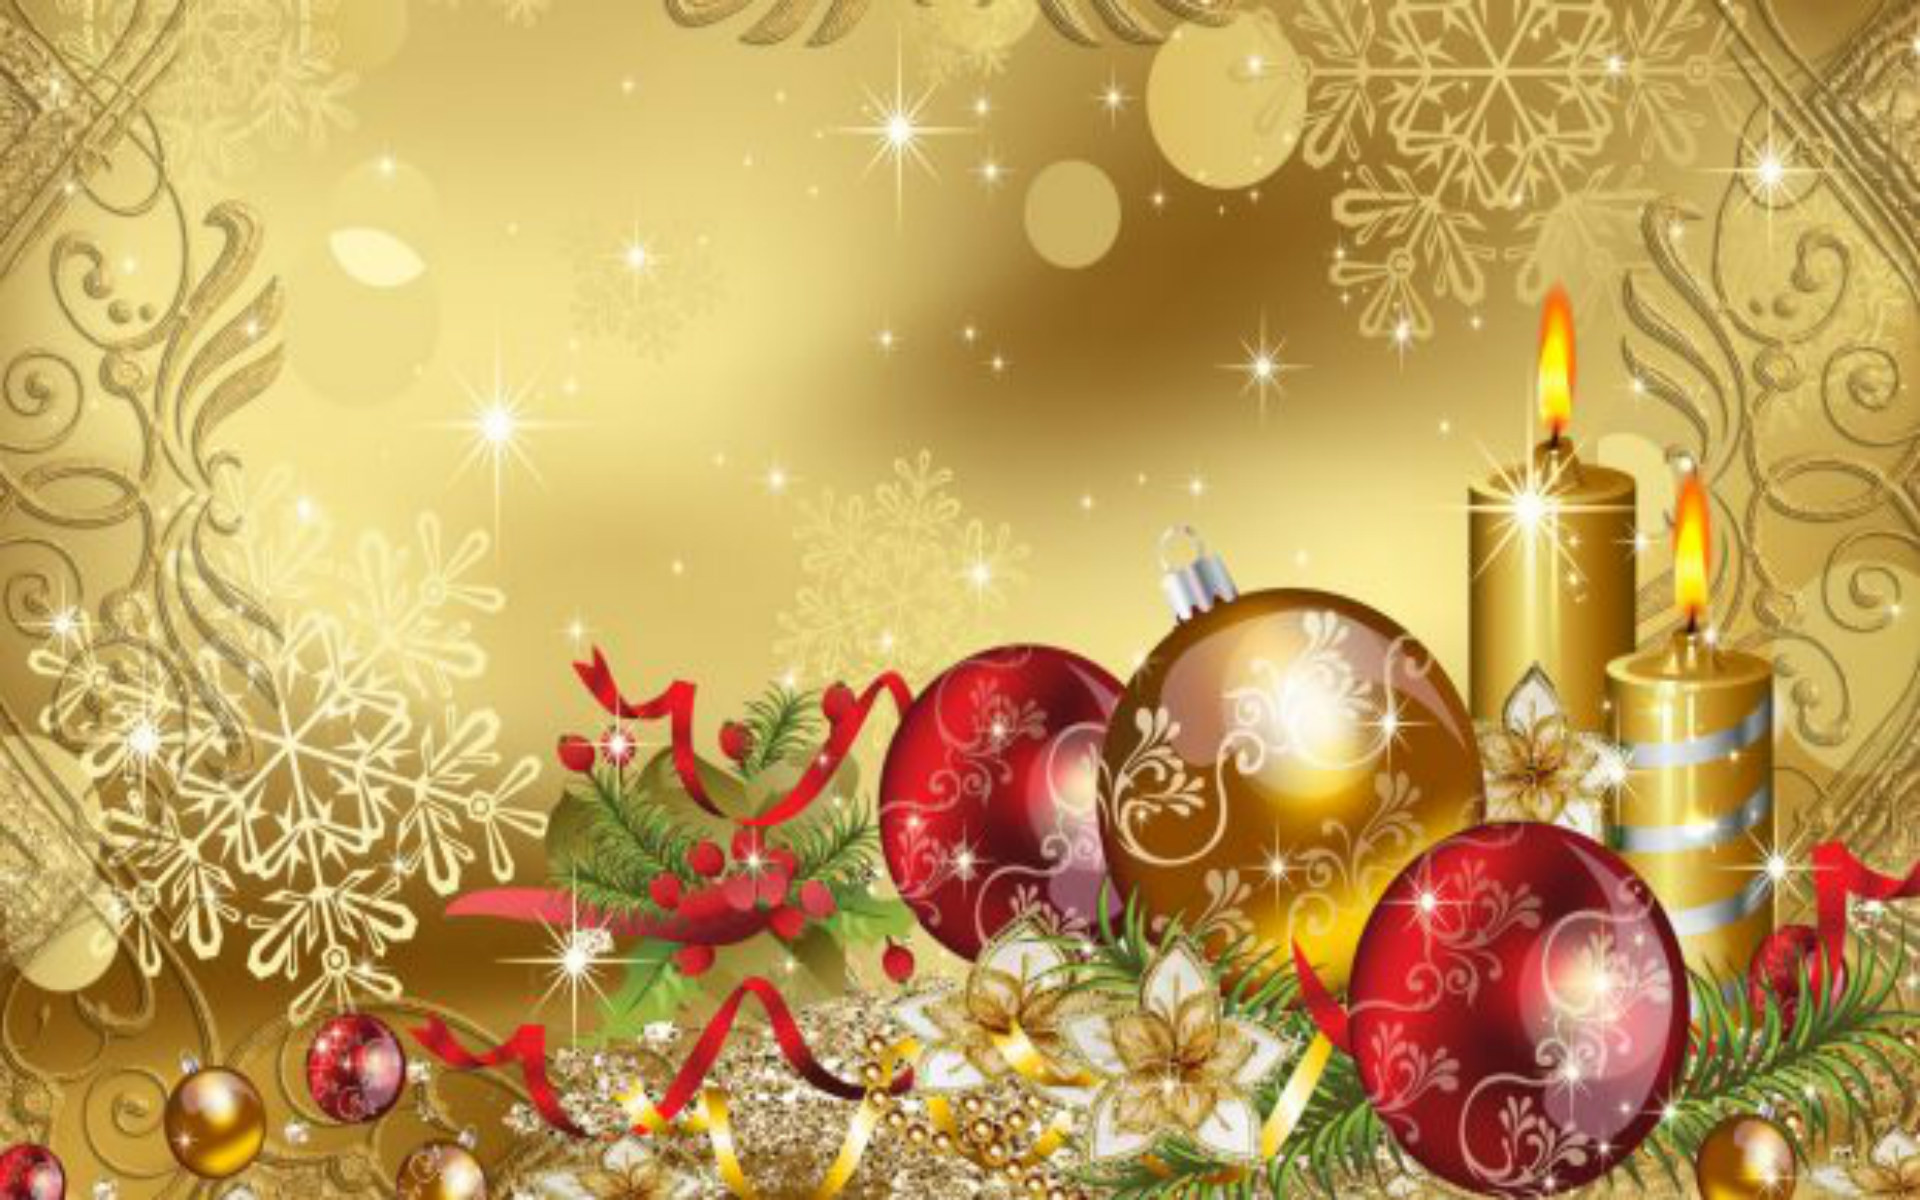 1920x1200 desktop christmas background collection 76; pink christmas backgrounds  wallpaper cave; 23 merry christmas backgrounds merry christmas ...